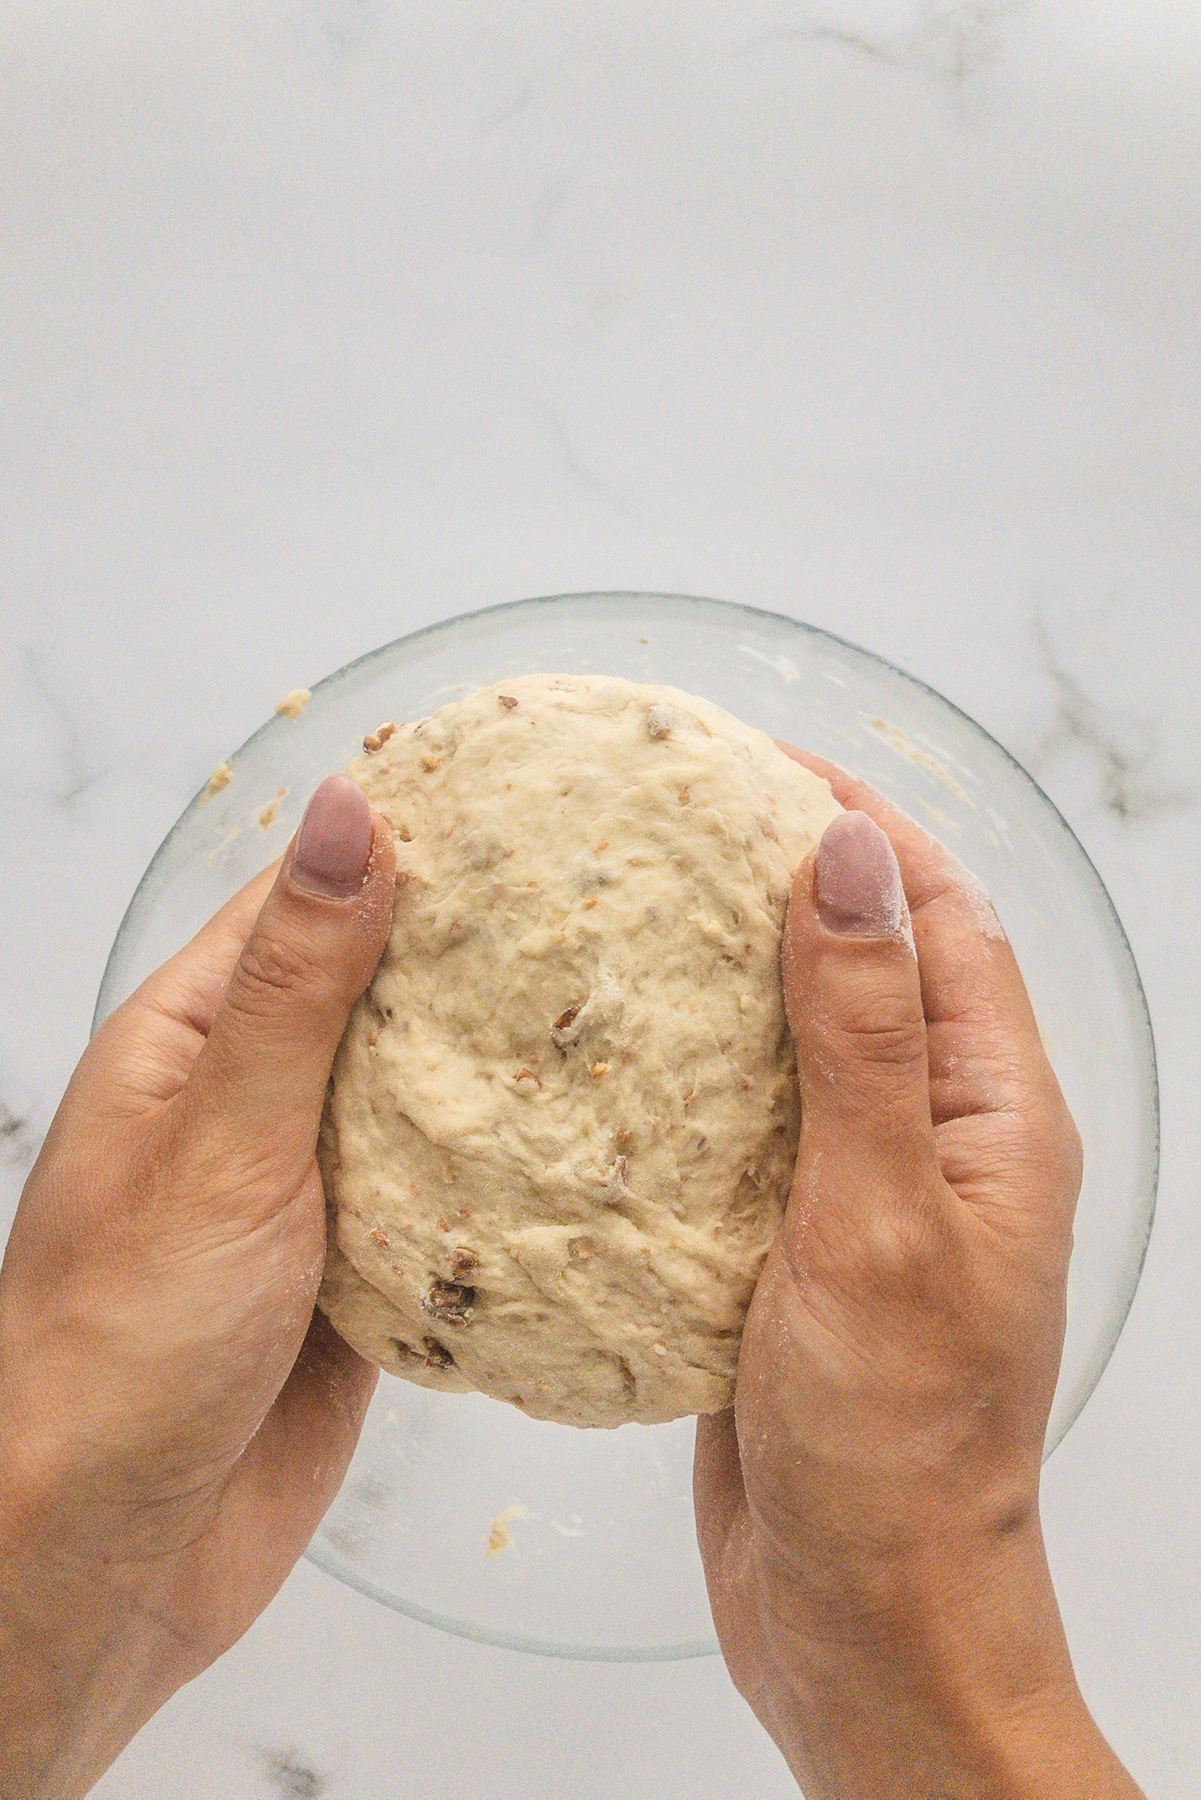 making a ball of the dough